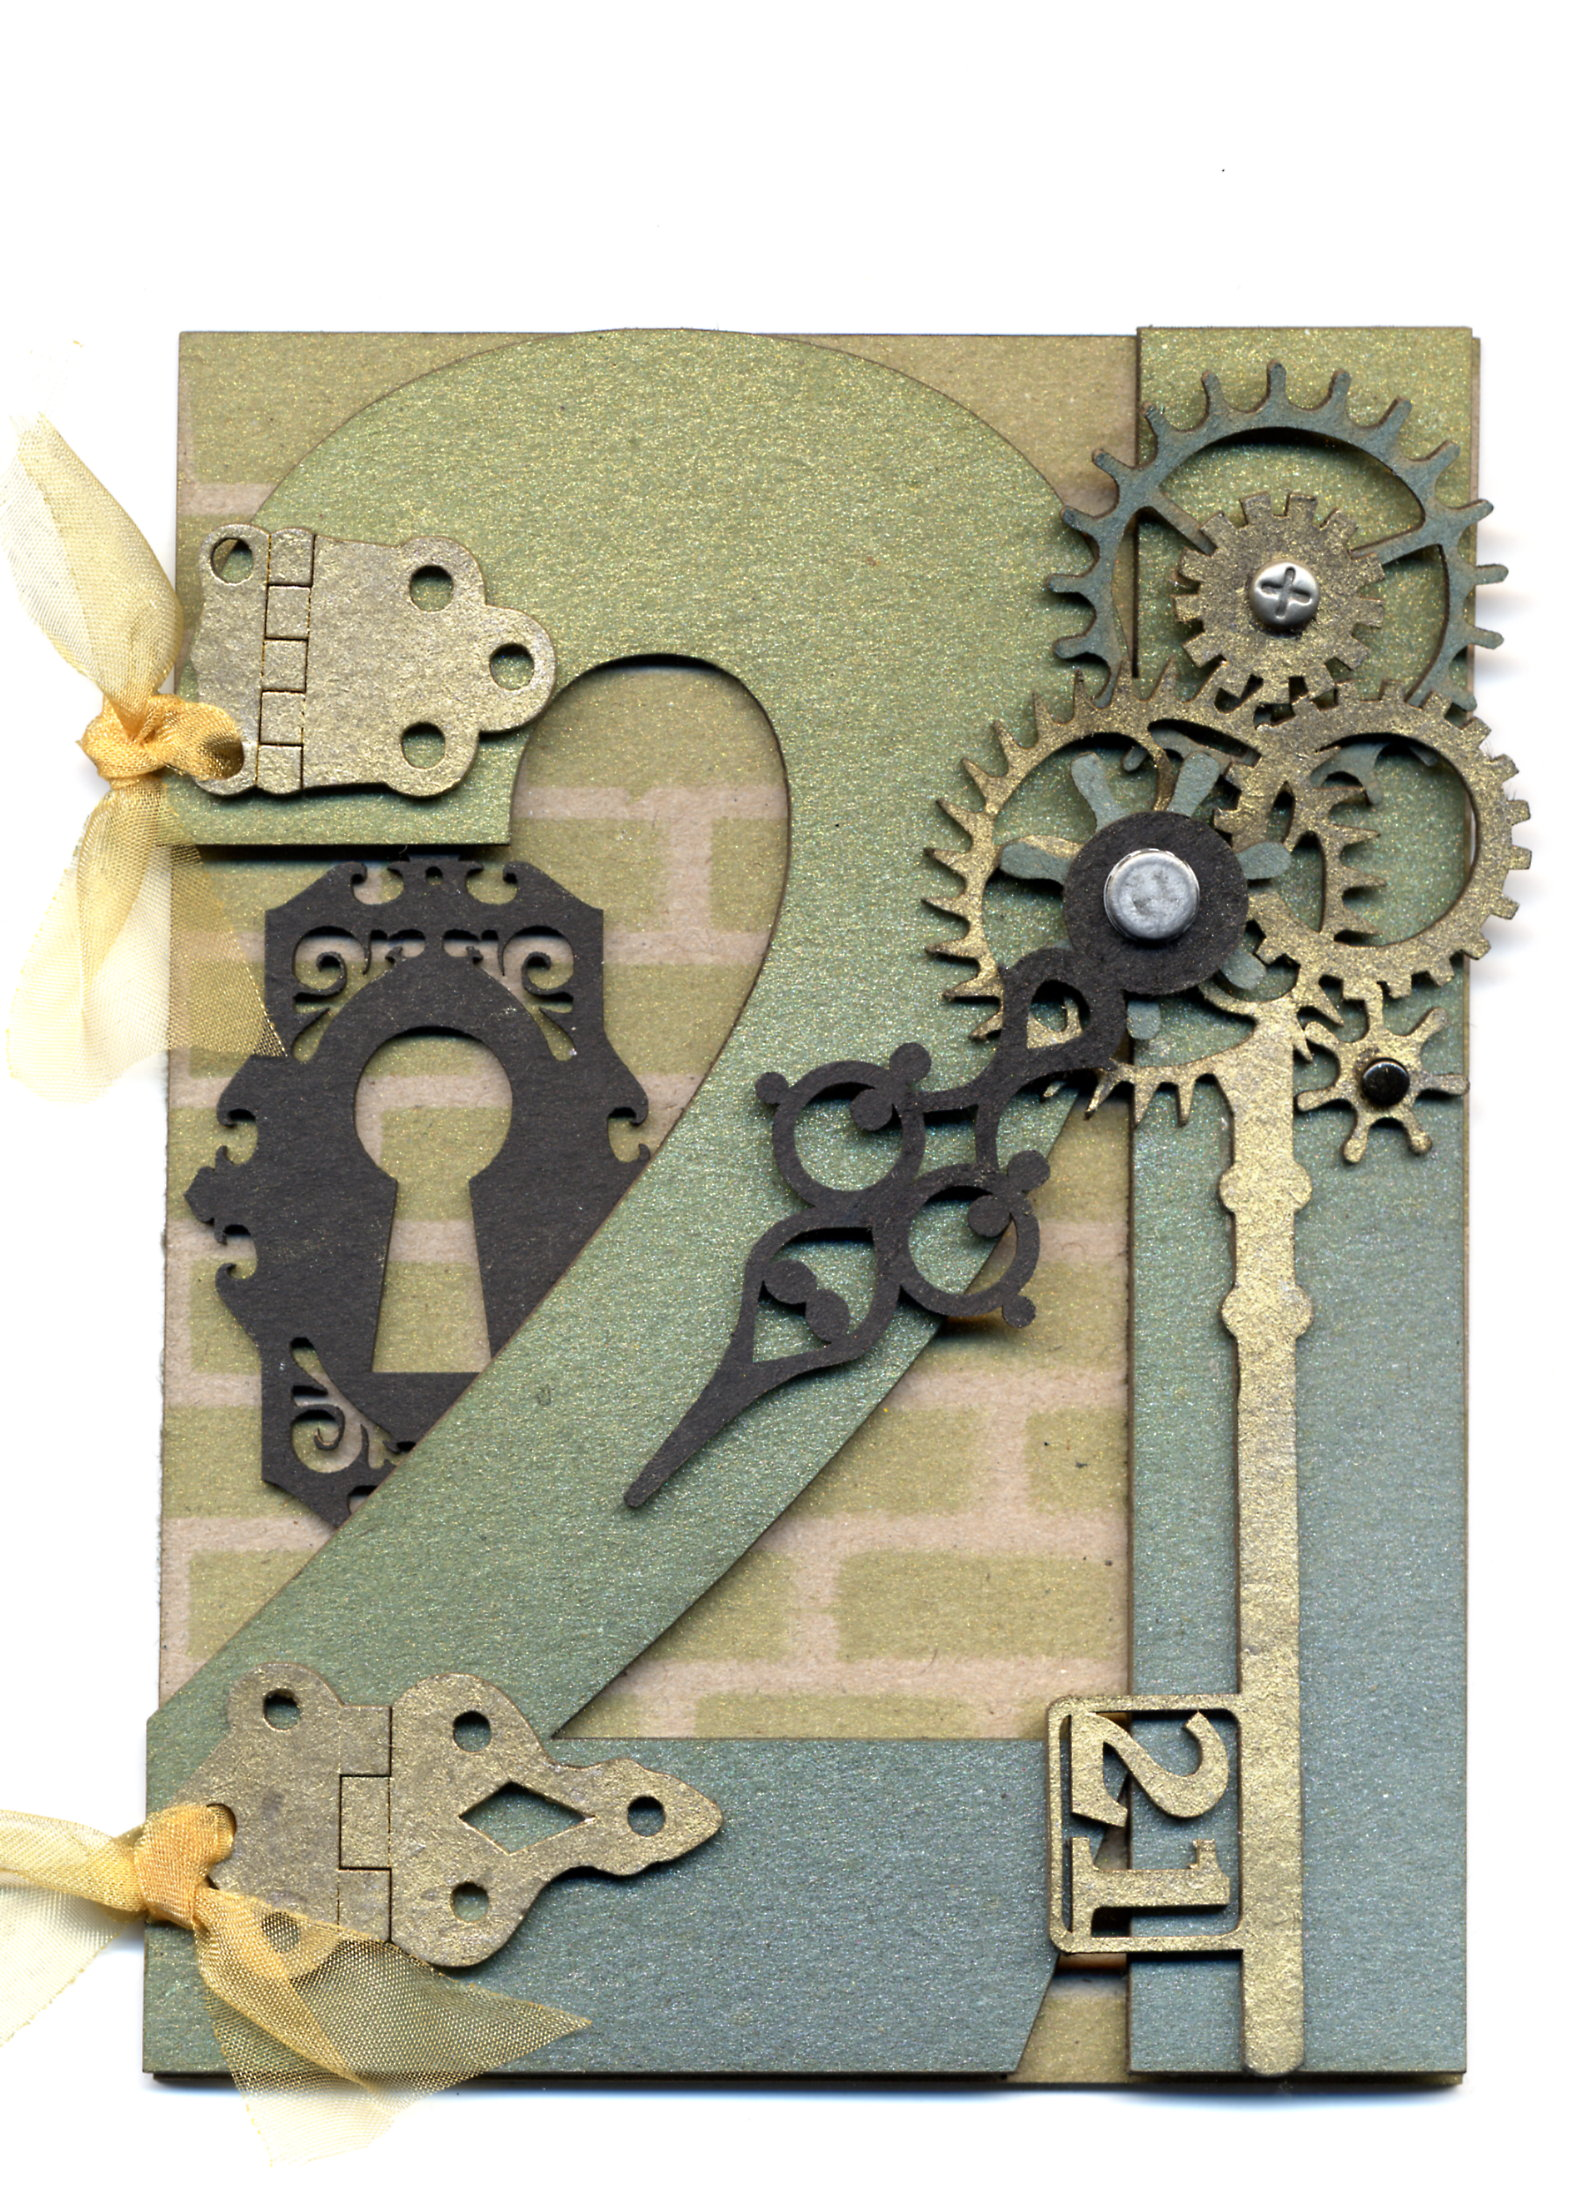 21st Birthday Card With Gears